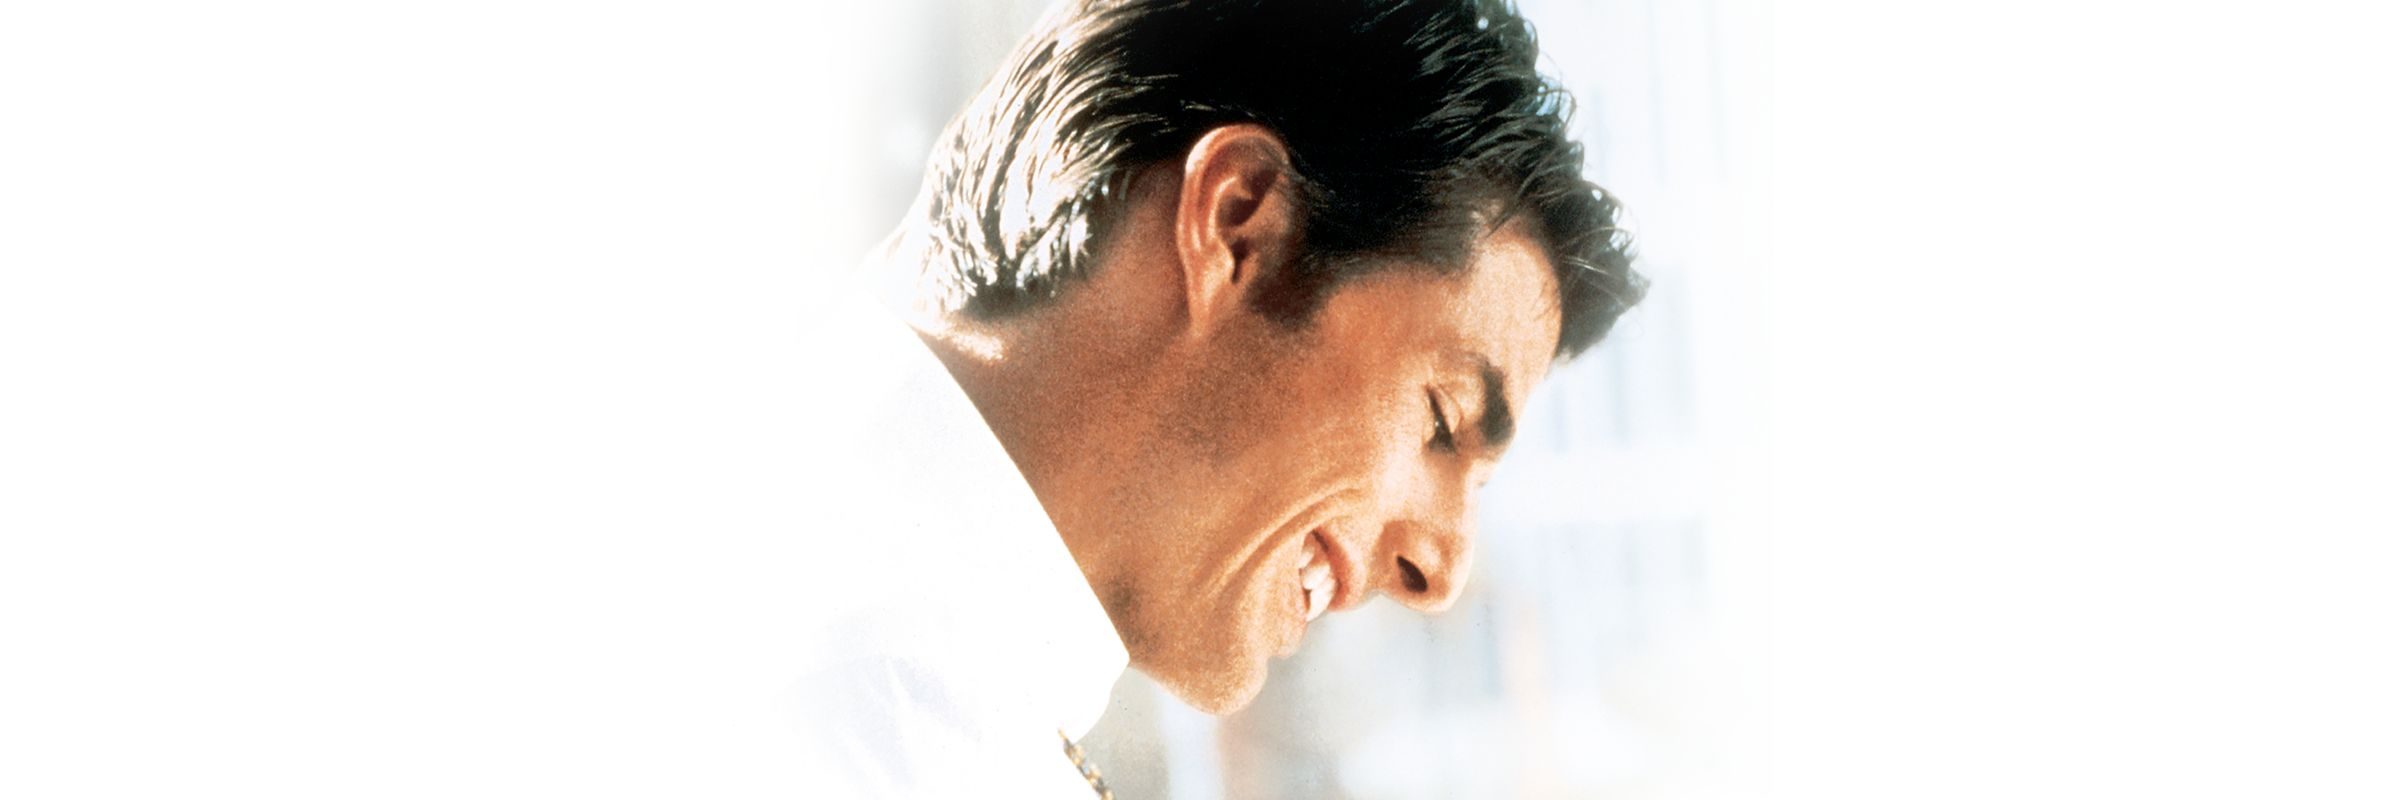 Jerry Maguire | Full Movie | Movies Anywhere